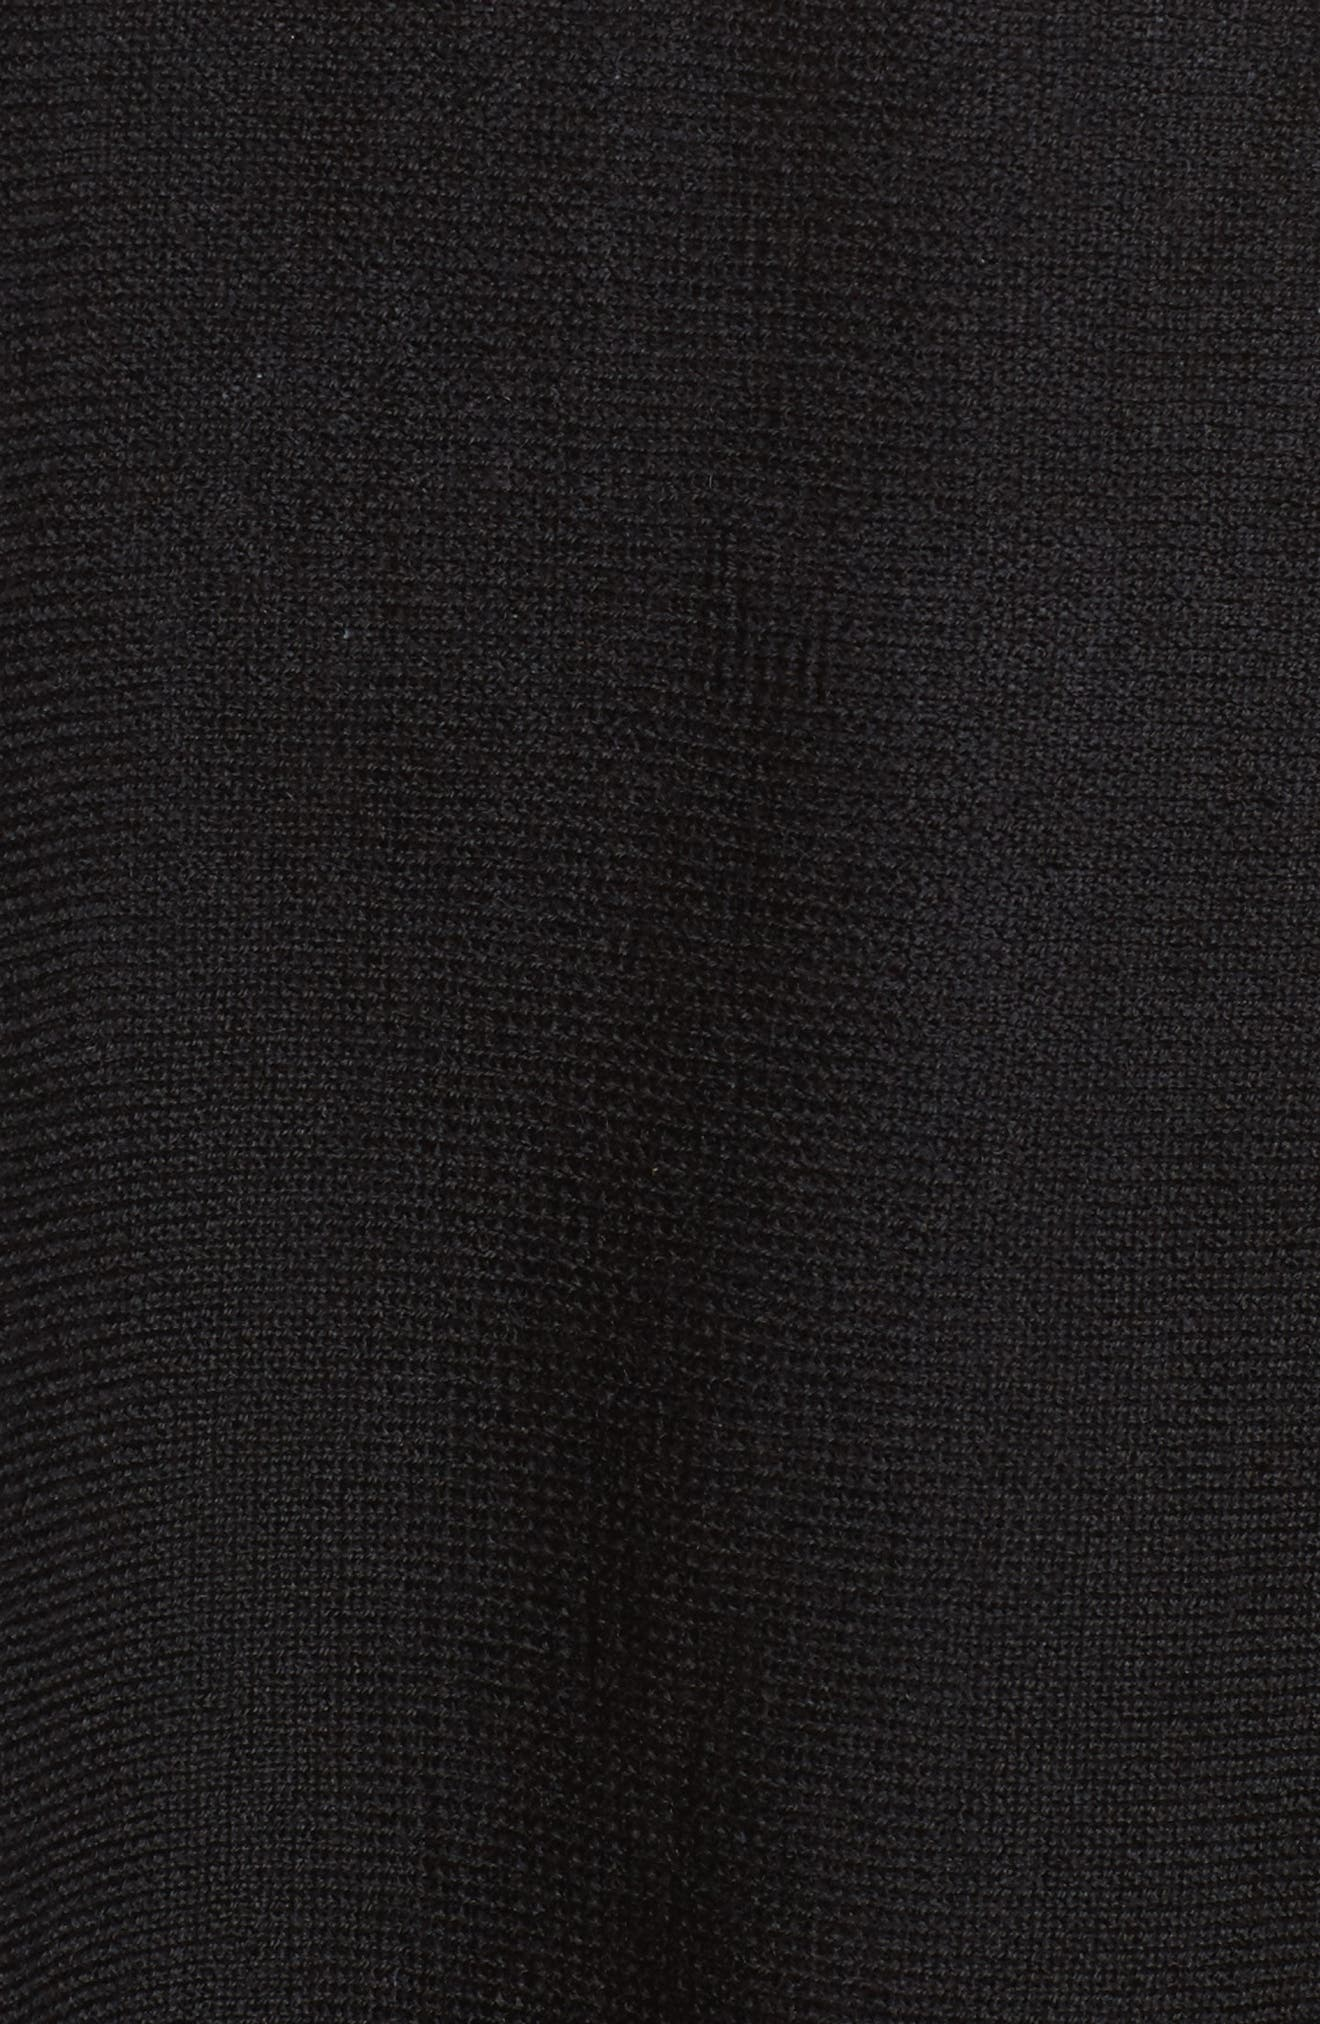 Crop Merino Wool Sweater,                             Alternate thumbnail 5, color,                             Black